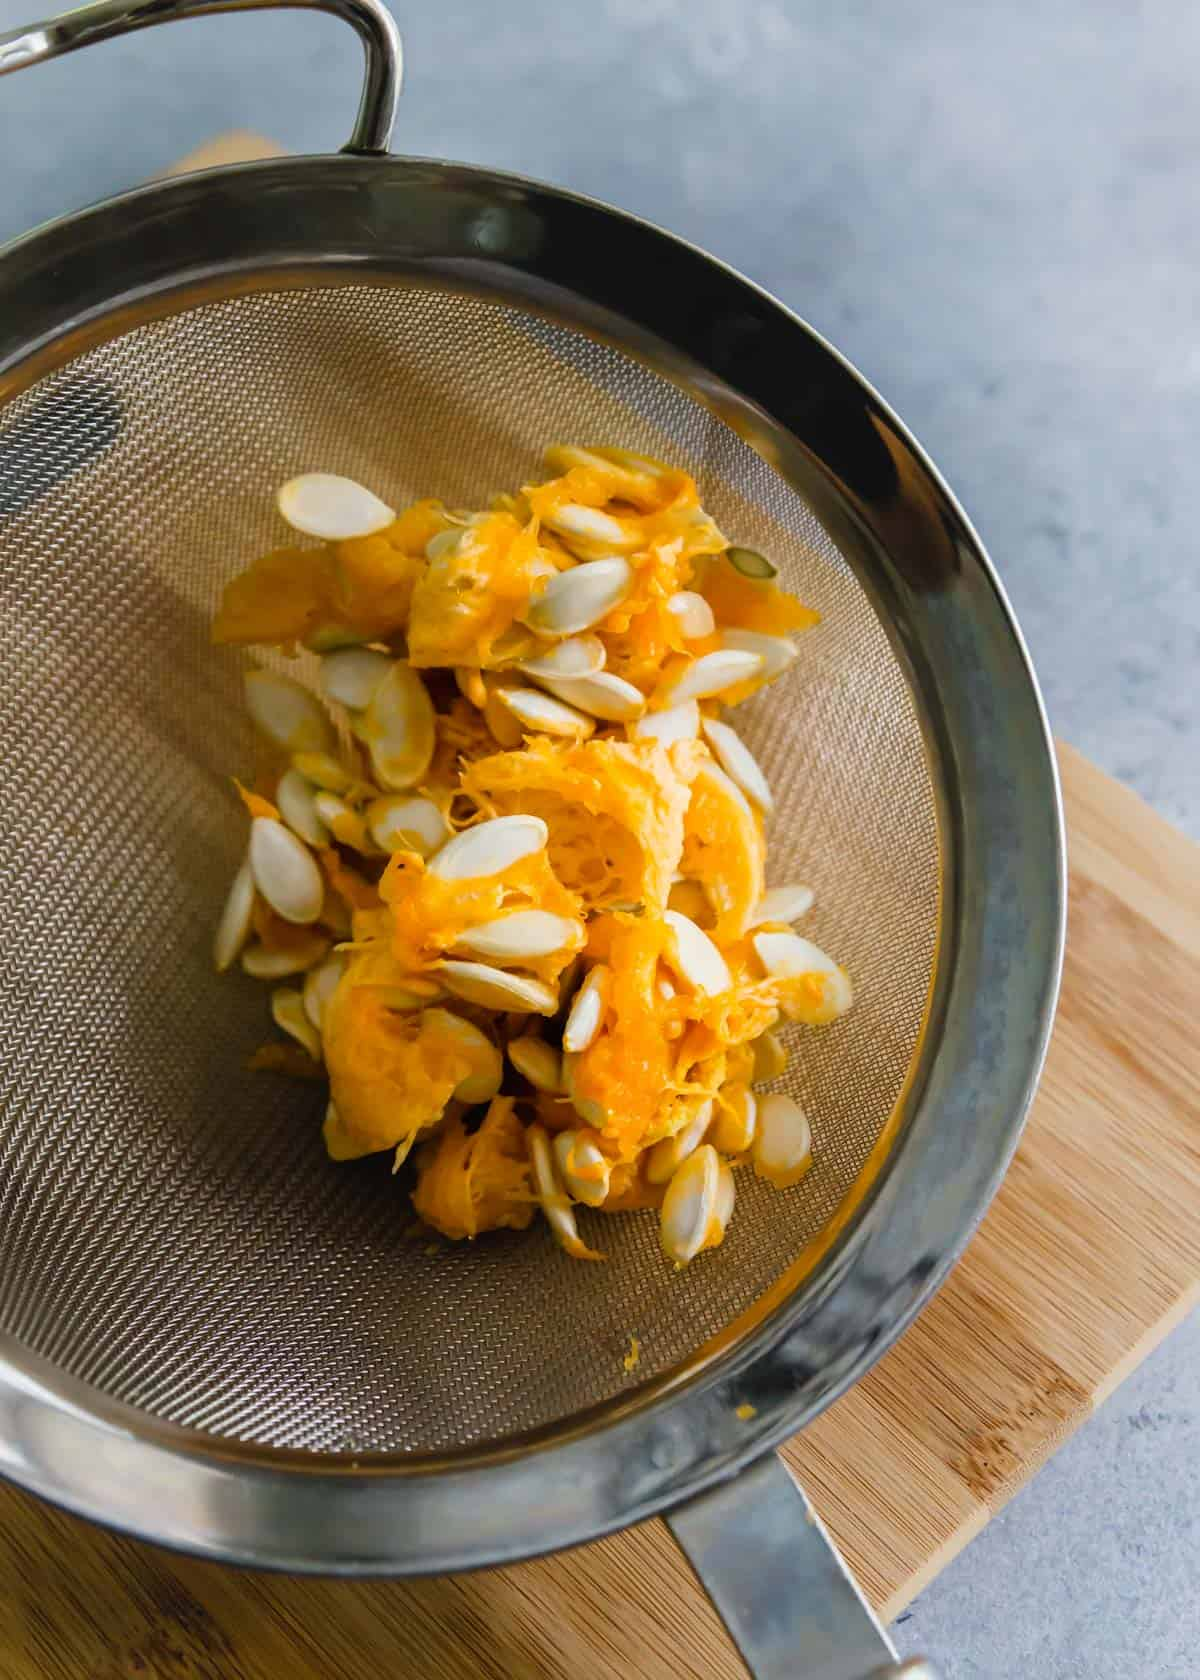 squash seeds before cleaning with pulp still attached in a colander.